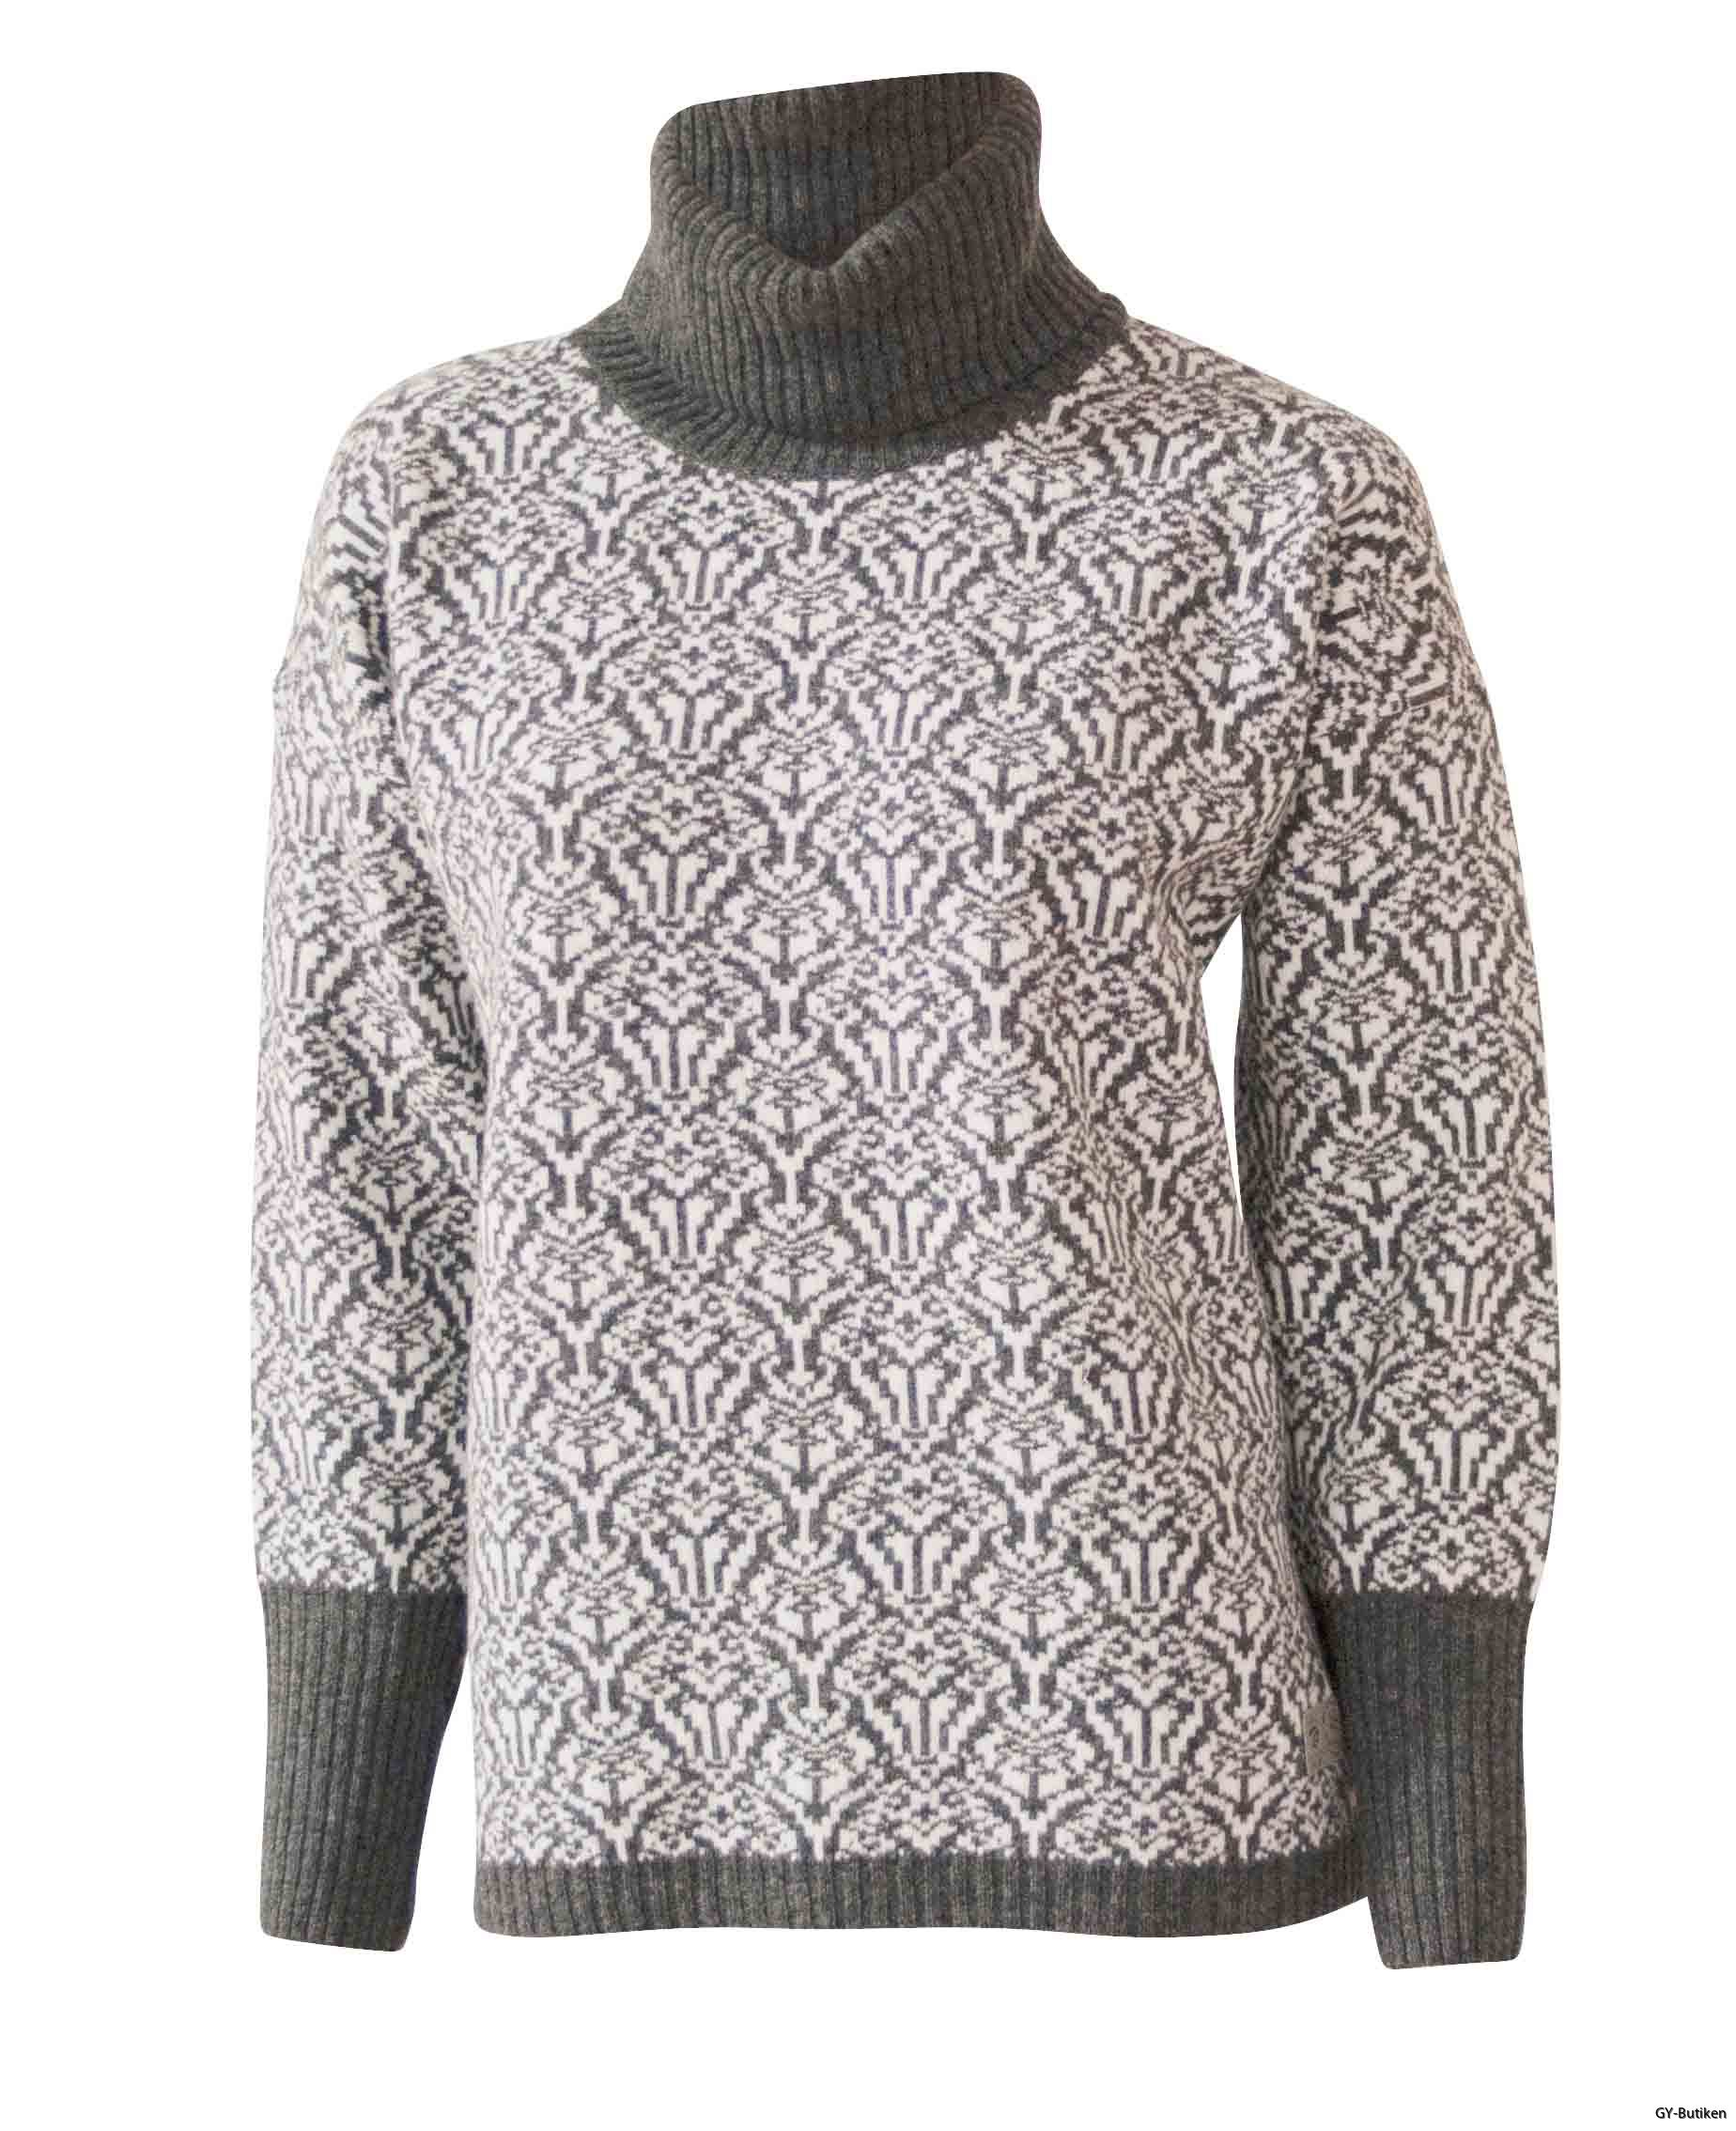 GY_Korrebo_Sweater_013